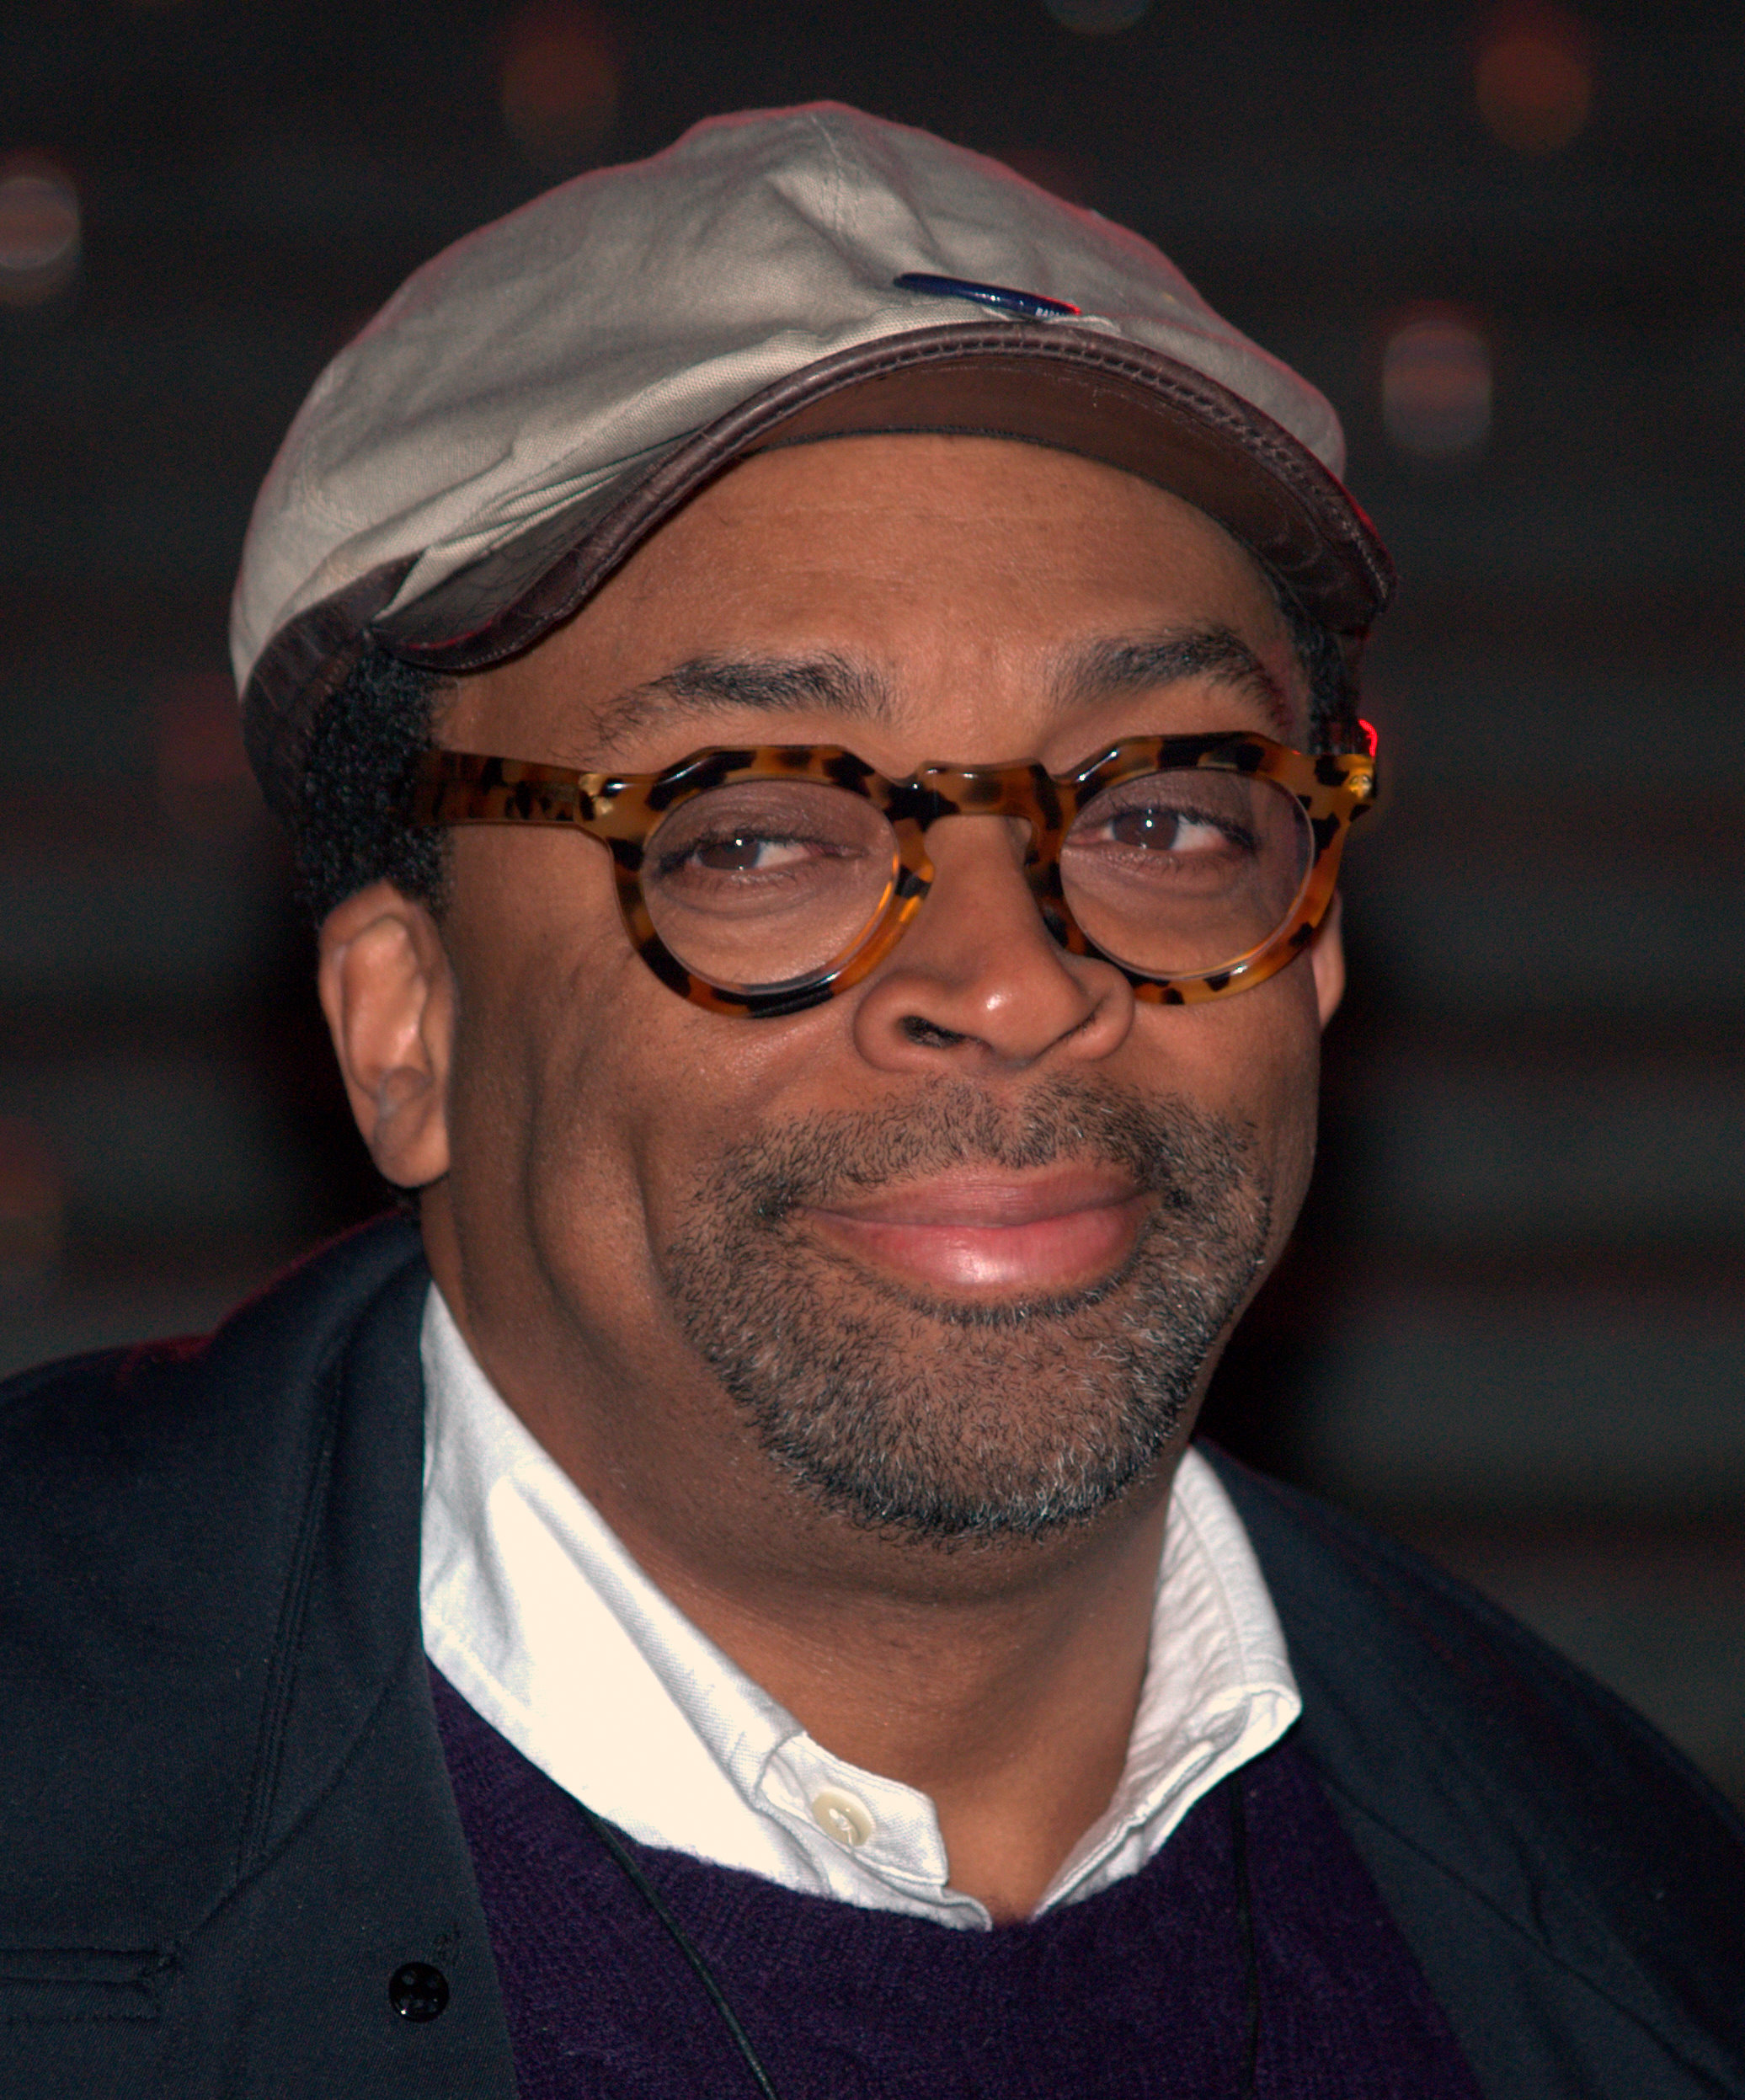 File:Spike Lee at the 2009 Tribeca Film Festival.jpg - Wikimedia ...